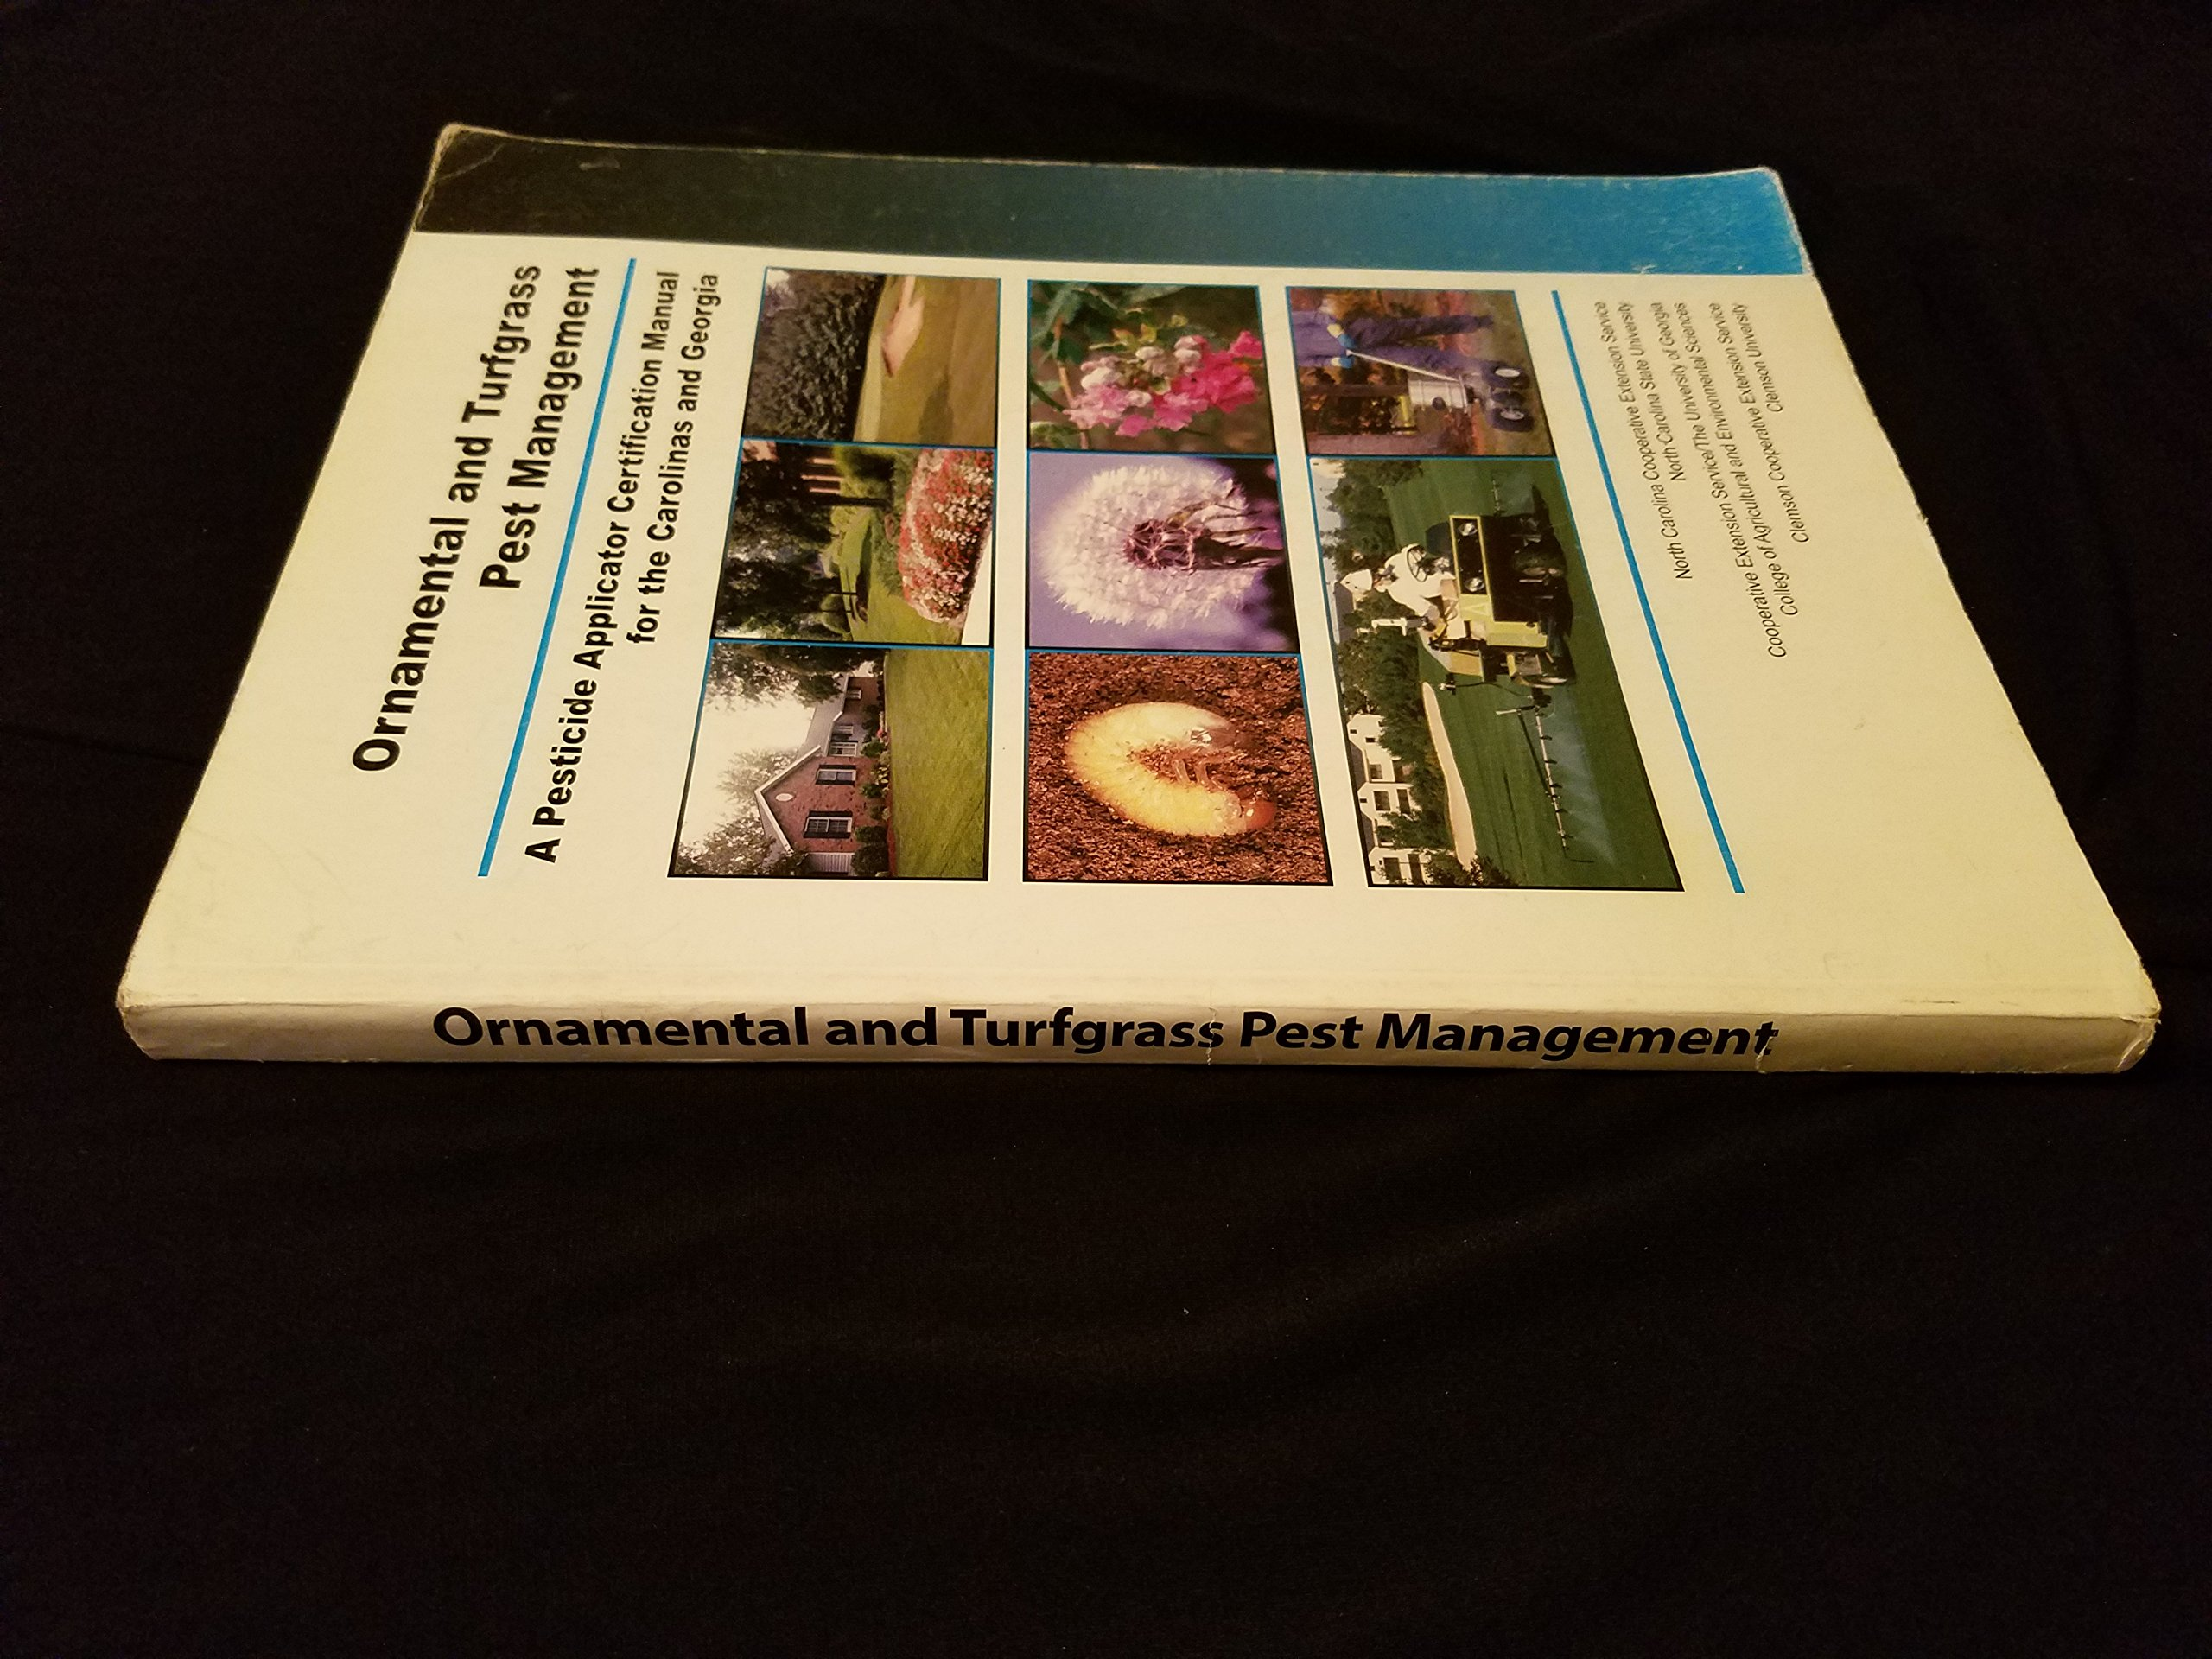 Ornamental and turfgrass pest management a pesticide applicator ornamental and turfgrass pest management a pesticide applicator certification manual for the carolinas and georgia amazon books fandeluxe Image collections